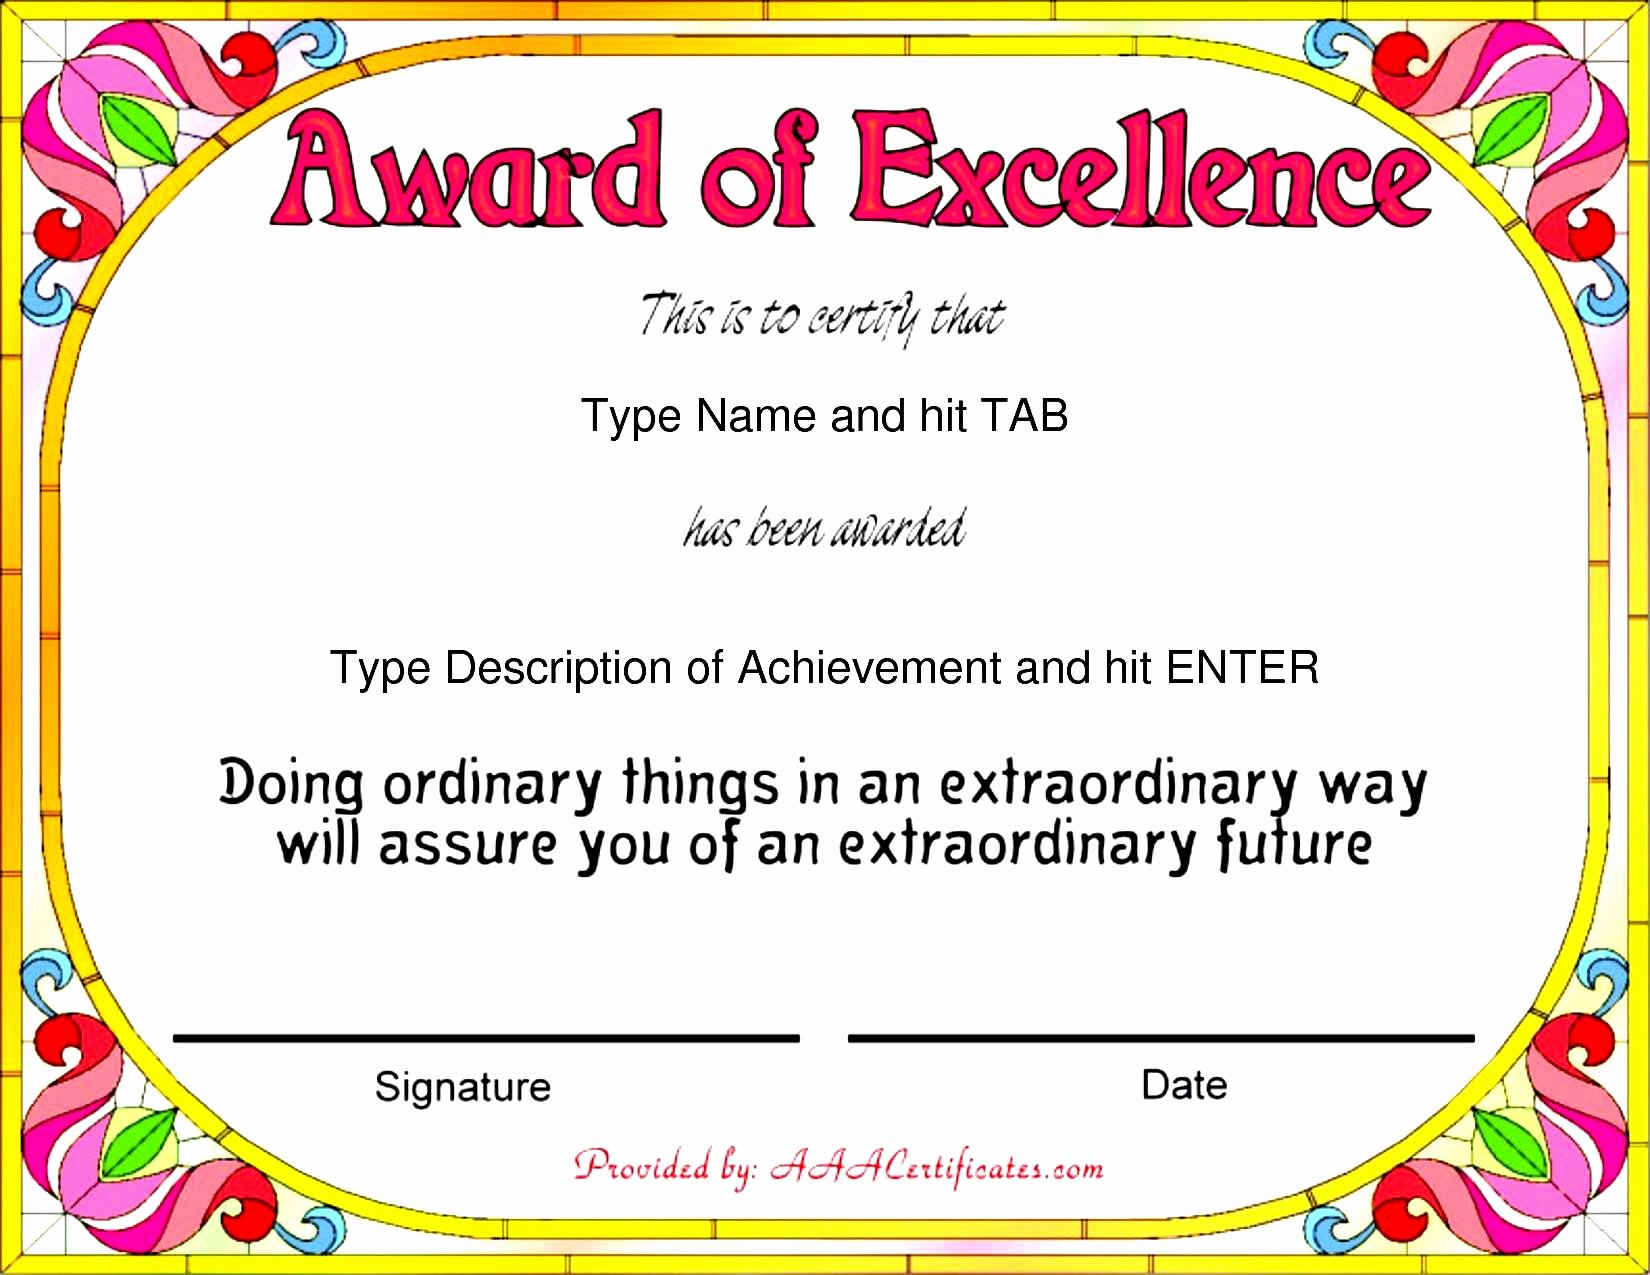 Certificate Of Excellence Template Word Beautiful 43 Stunning Certificate and Award Template Word Examples